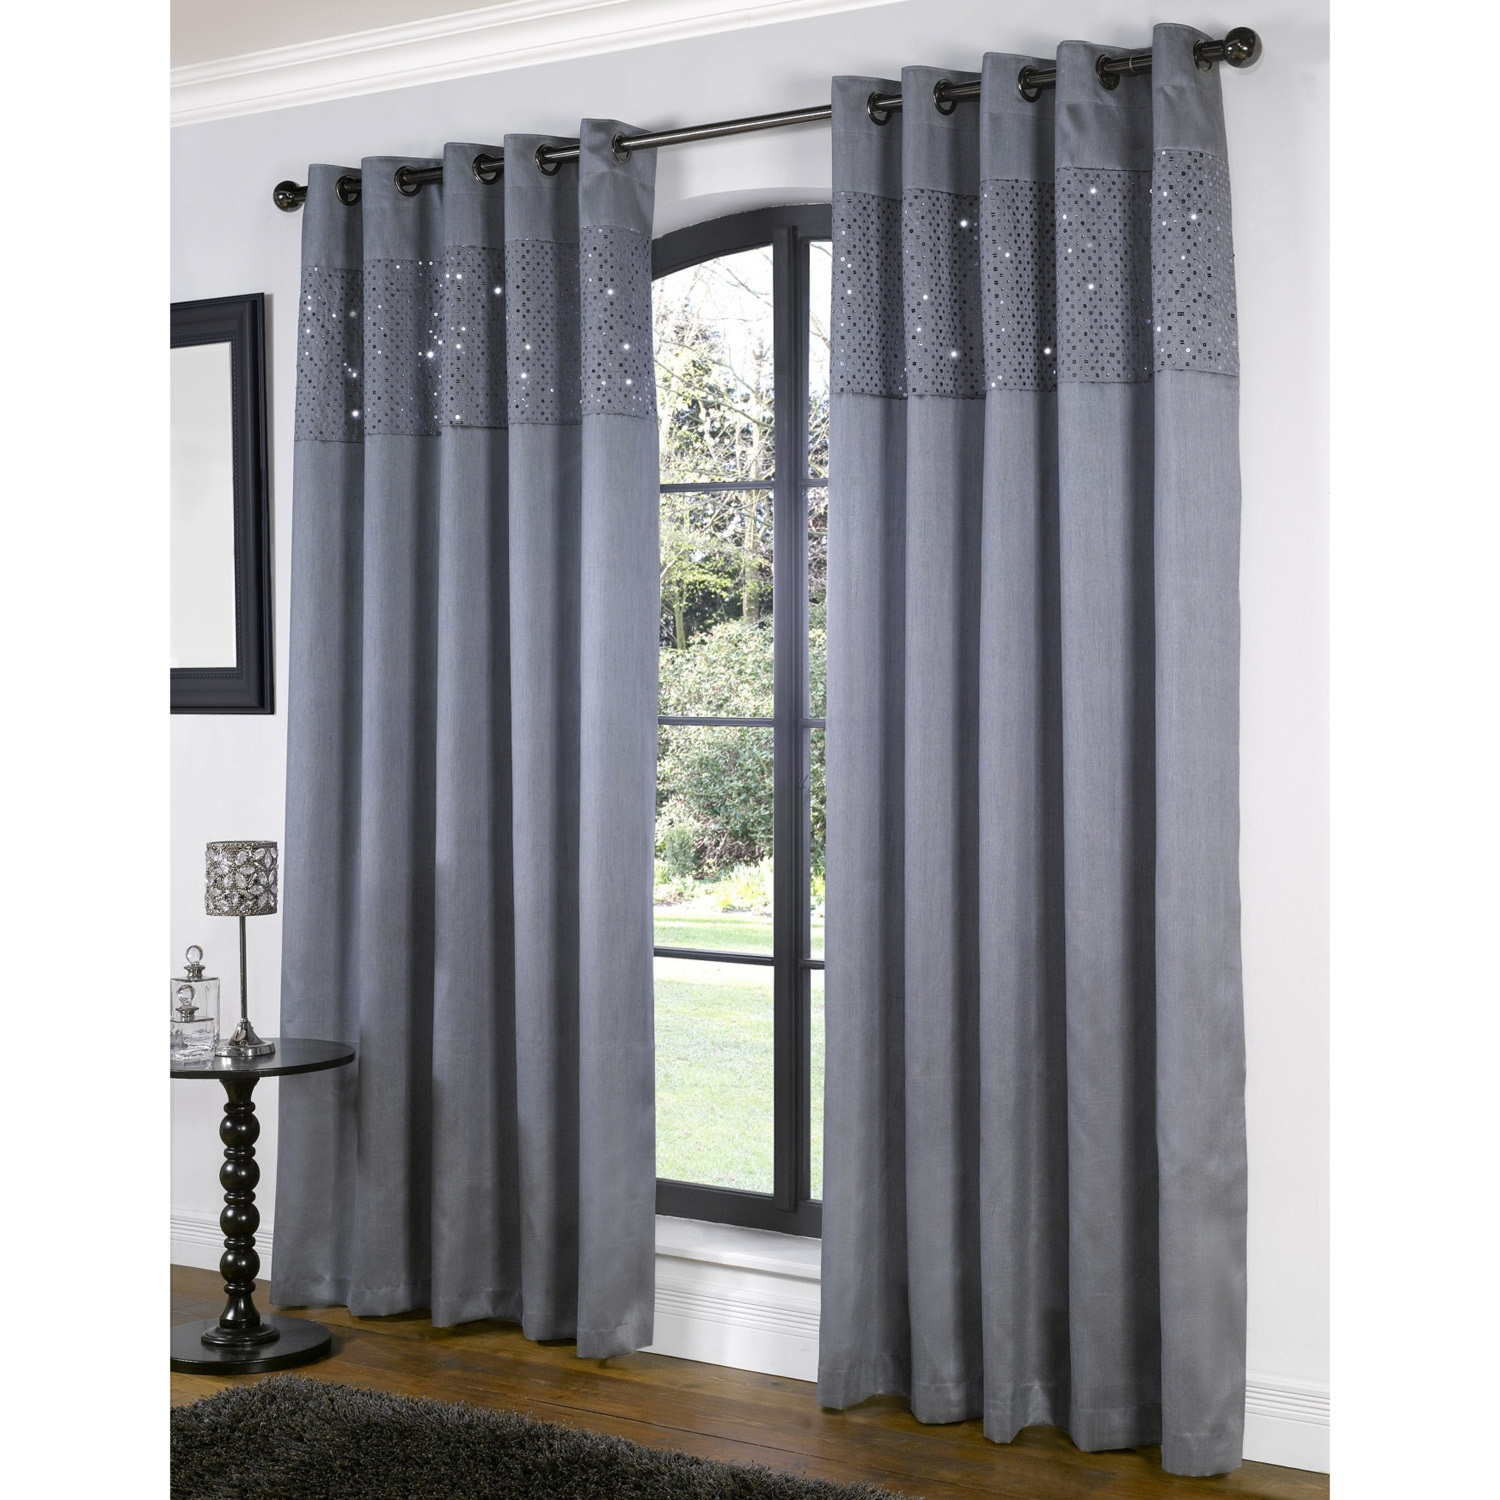 Glamour Lined Eyelet Curtains For Grey Eyelet Curtains (Image 10 of 25)